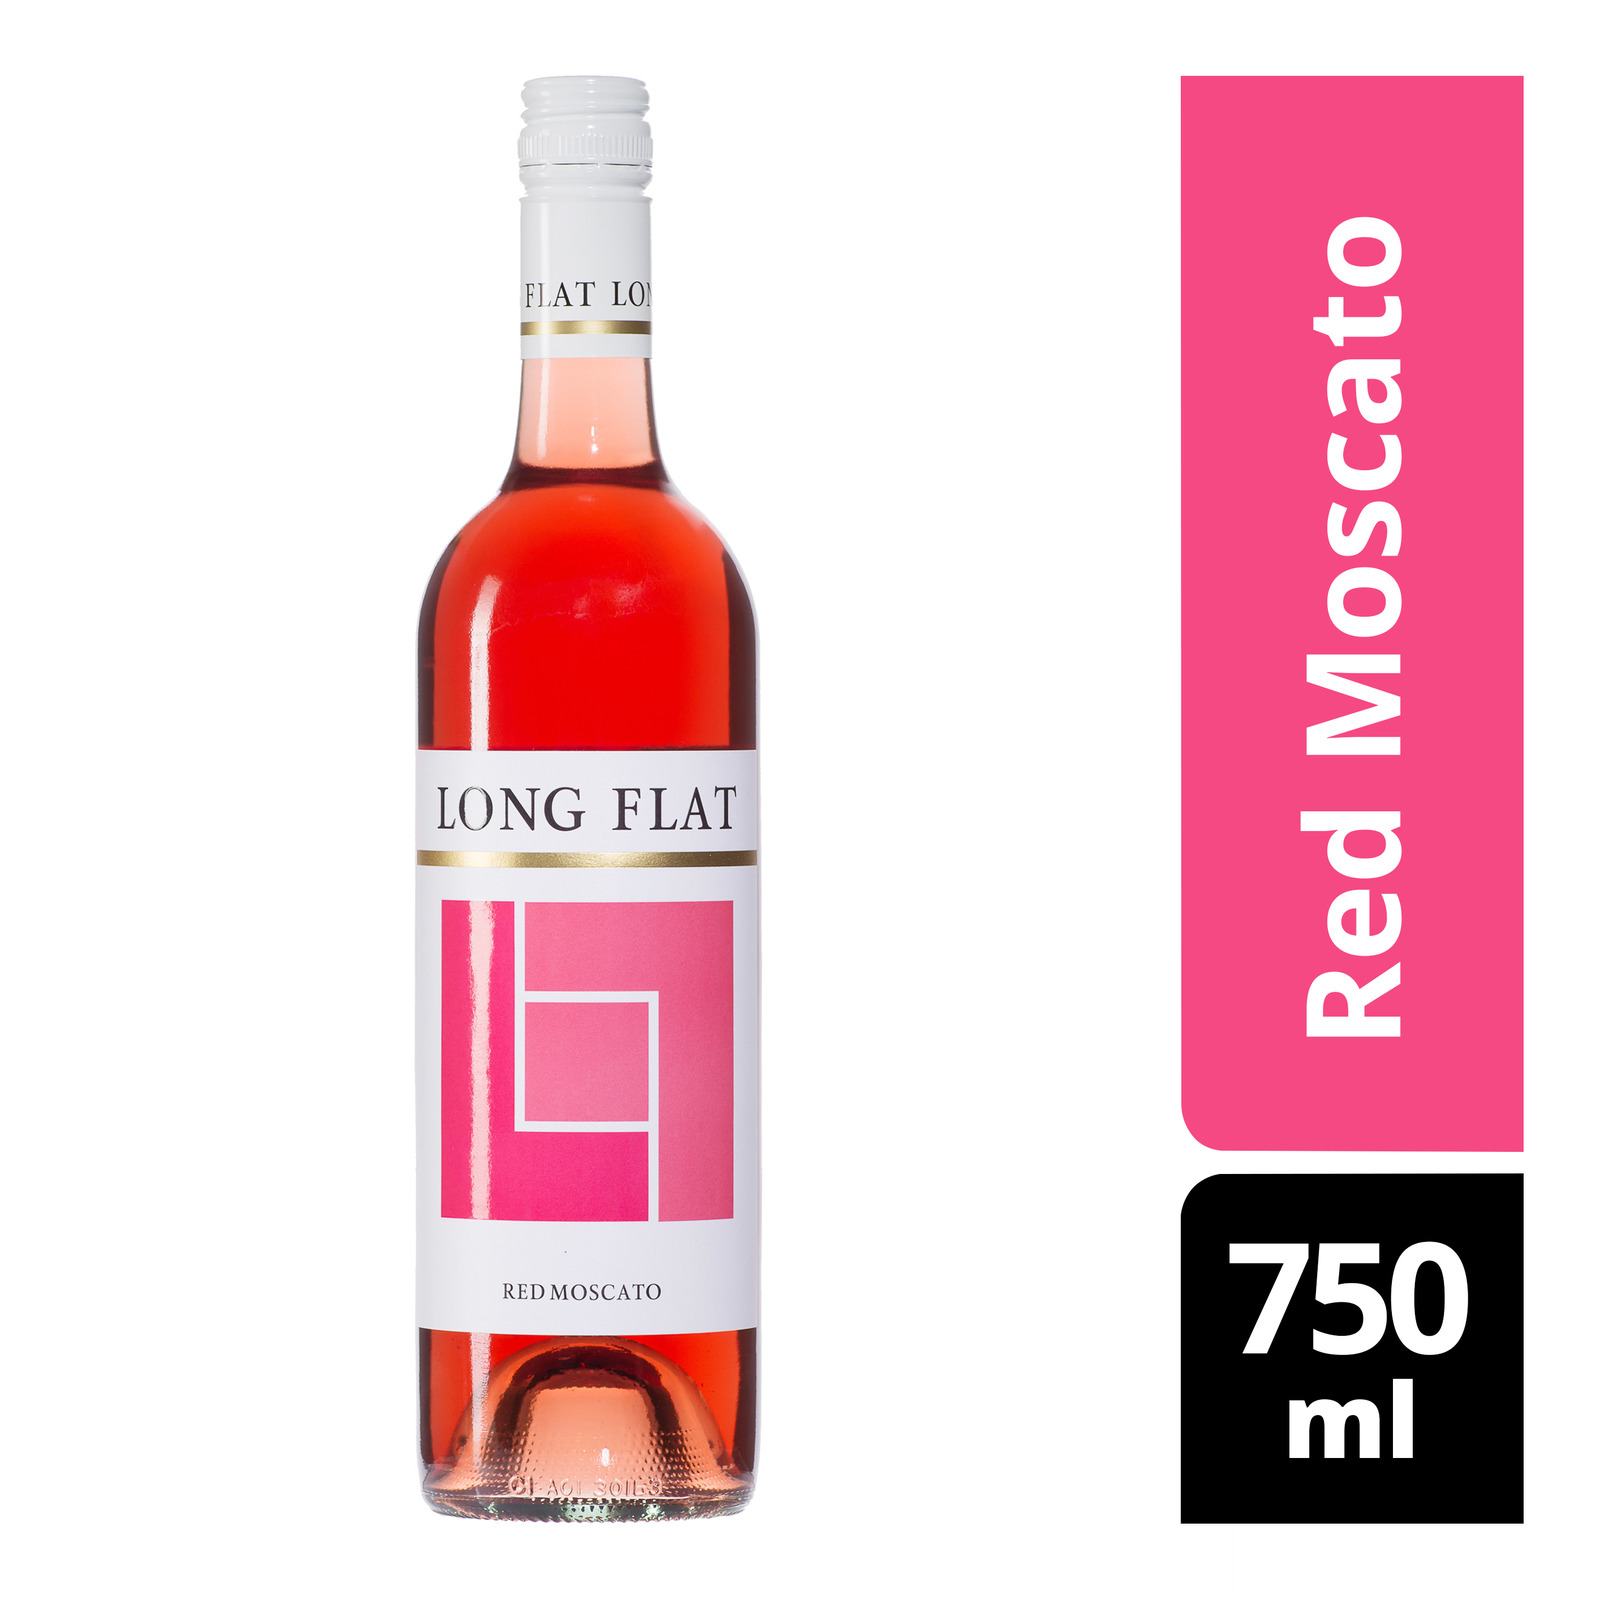 Long Flat Sweet Wine - Red Moscato